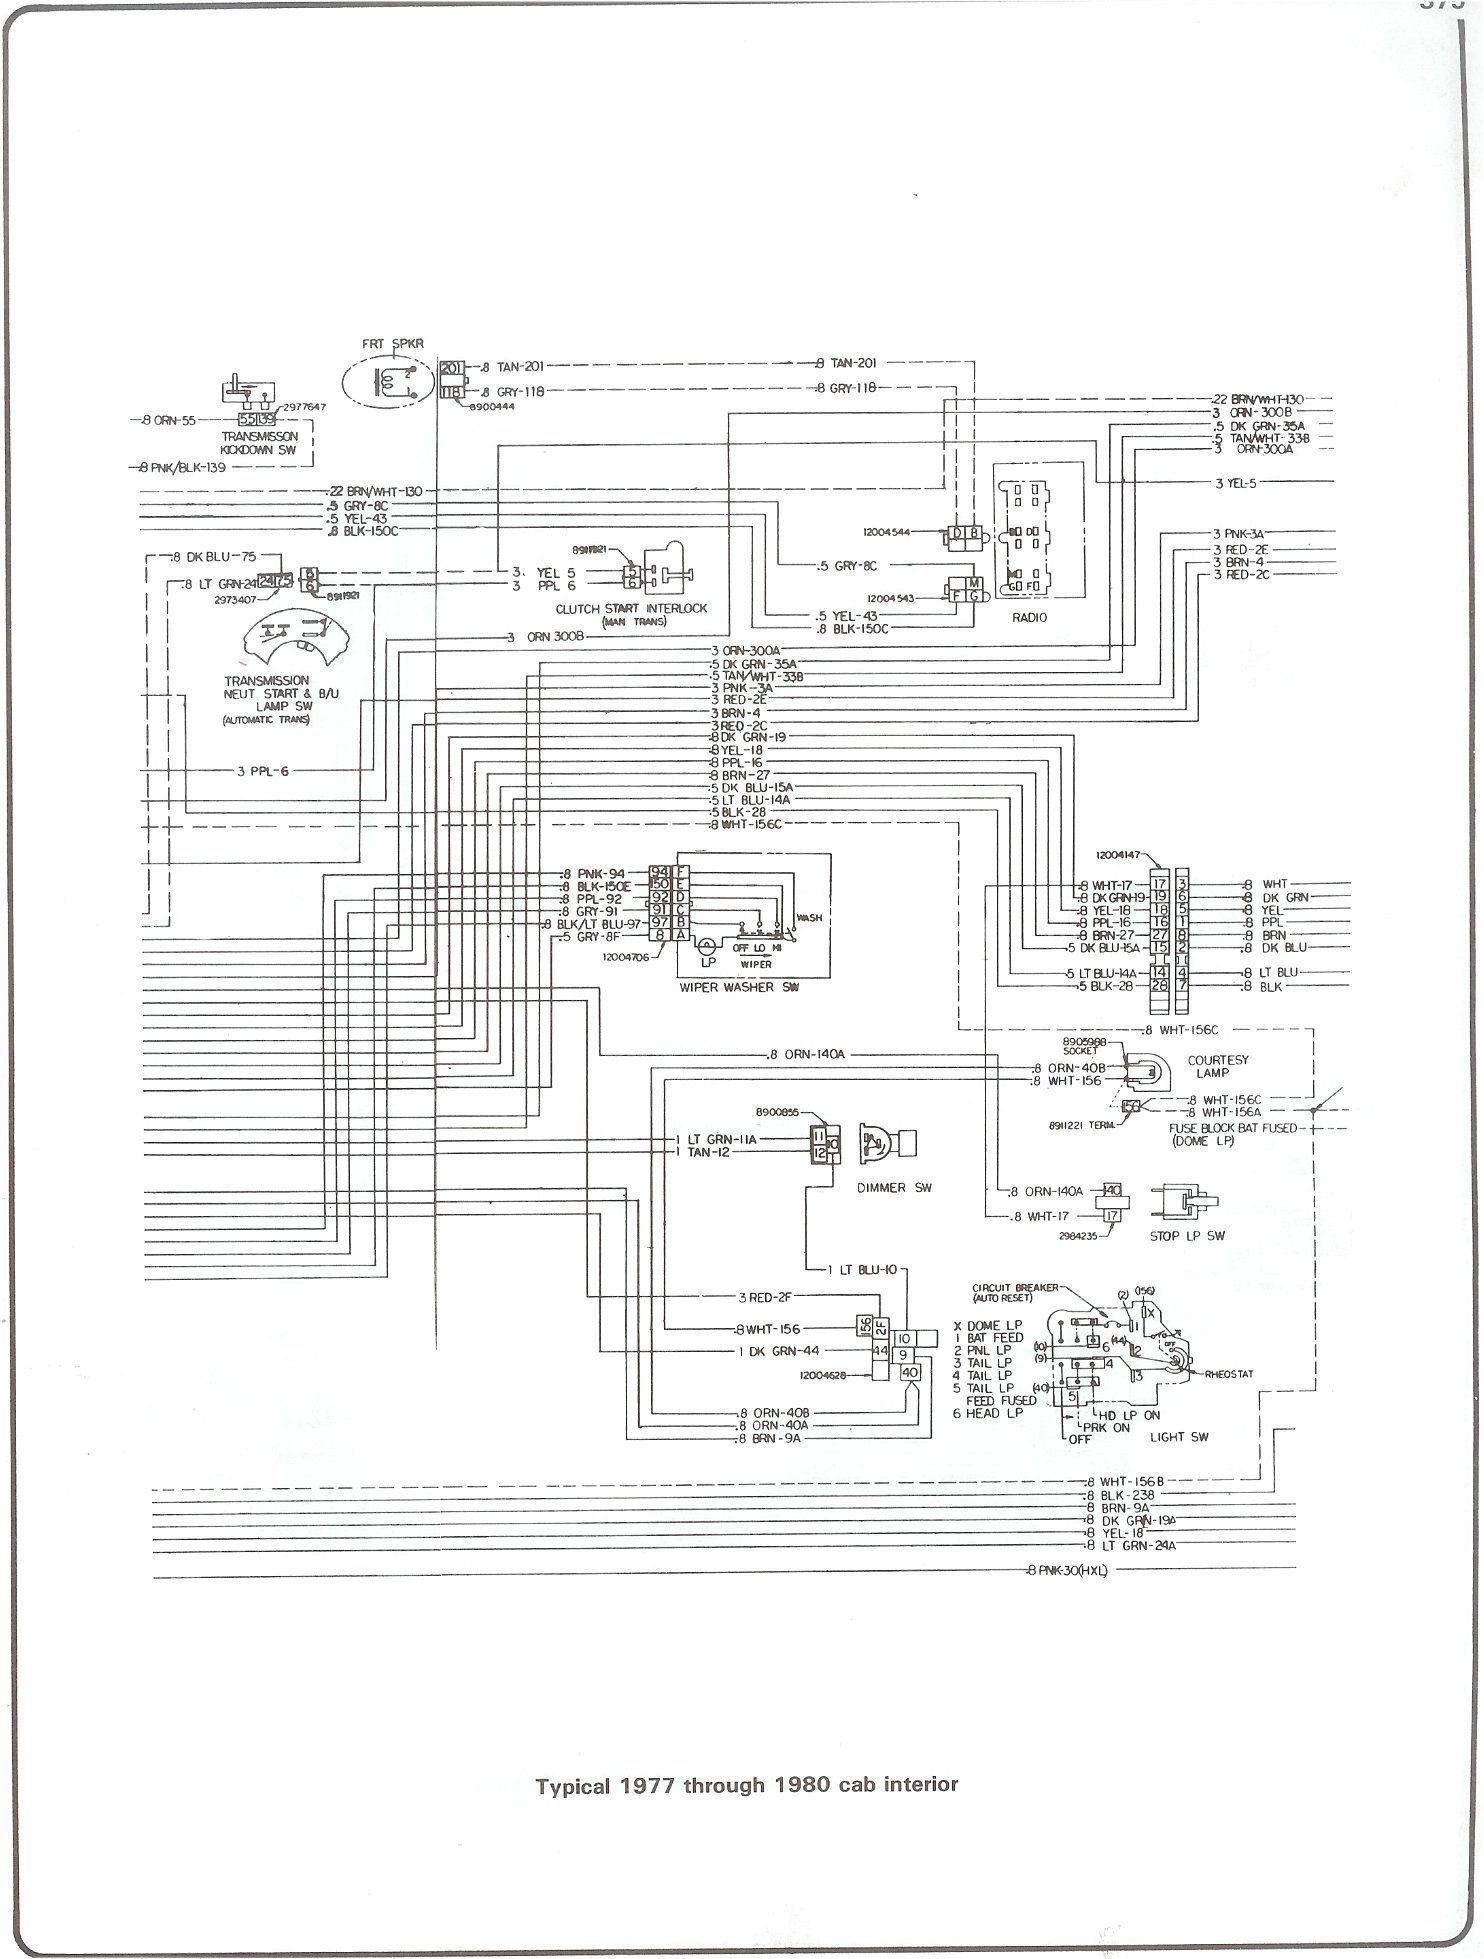 Ford 73 Alternator Wiring Diagram | Wiring Diagram  Ford Mustang Alternator Wiring Diagram on ford one wire alternator diagram, ford alternator wiring harness, ford truck alternator diagram, ford alternator parts diagram, ford external voltage regulator diagram, 1968 mustang turn signal diagram, mustang wiring harness diagram, 1973 mustang electrical diagram, 1970 mustang instrument cluster diagram, basic ford solenoid wiring diagram, 1973 ford mustang wiring diagram, 1968 ford mustang wiring diagram, ford 3 wire alternator diagram, ford 1g alternator wiring, ford mustang custom sub box, ford 302 alternator wiring, 1998 chevy blazer wiring diagram, 1966 ford mustang wiring diagram, ford headlight wiring diagram, ford mustang solenoid wiring,